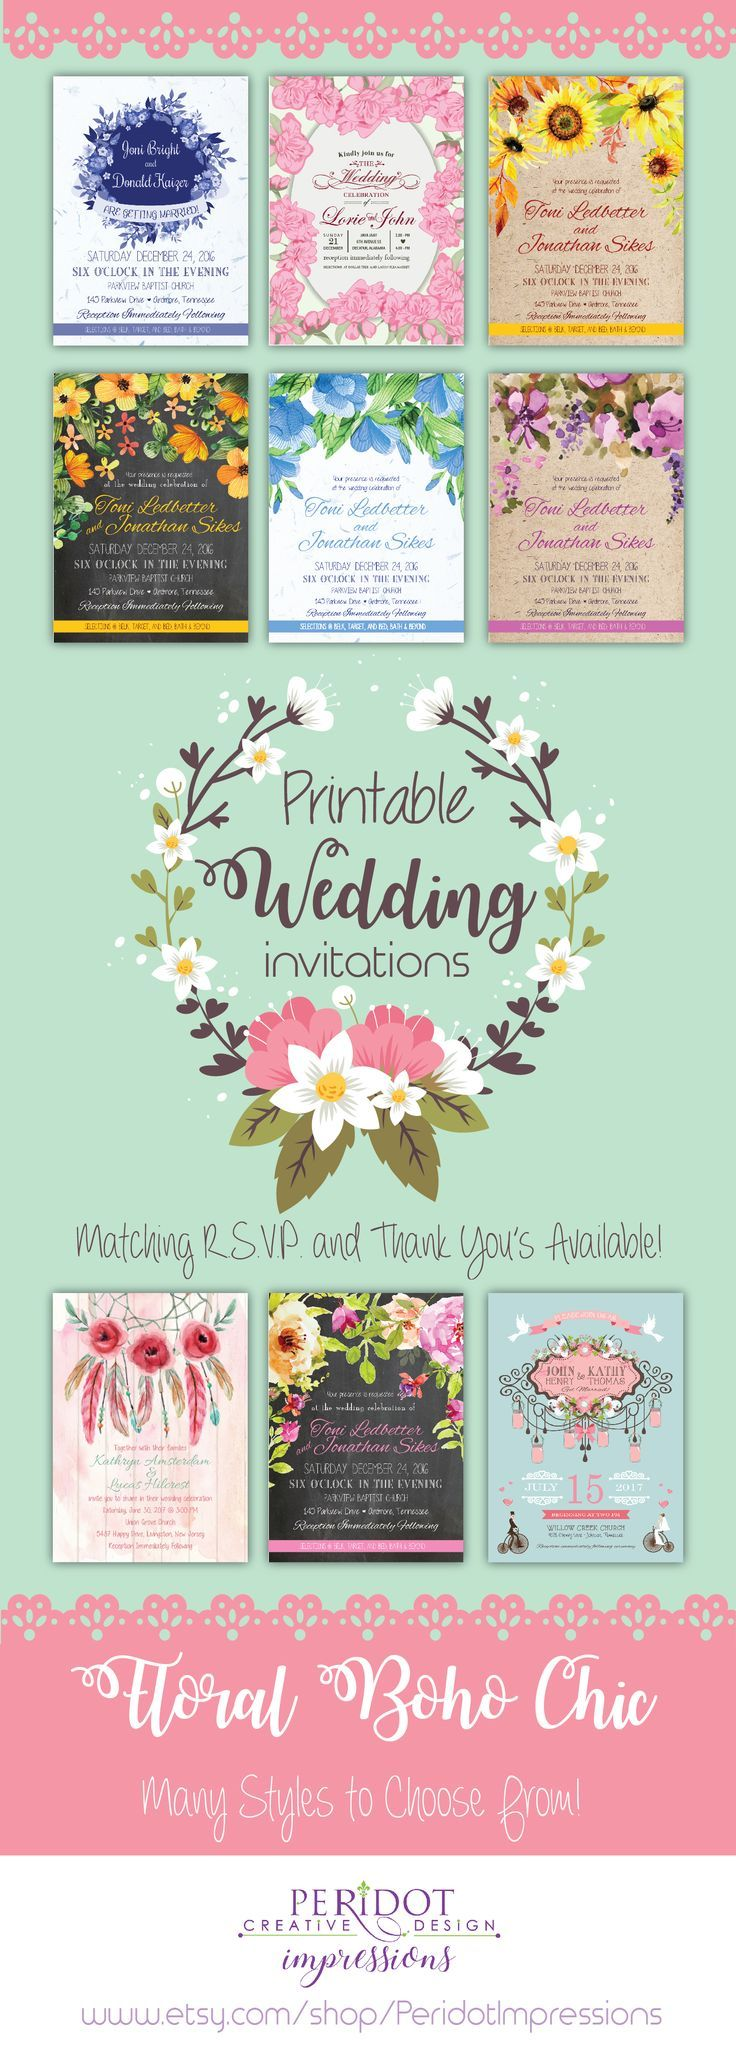 indian wedding cards wordings in hindi%0A Printable Boho Chic Floral Wedding Invitations  Fully Customizable   Matching RSVP cards and Thank You